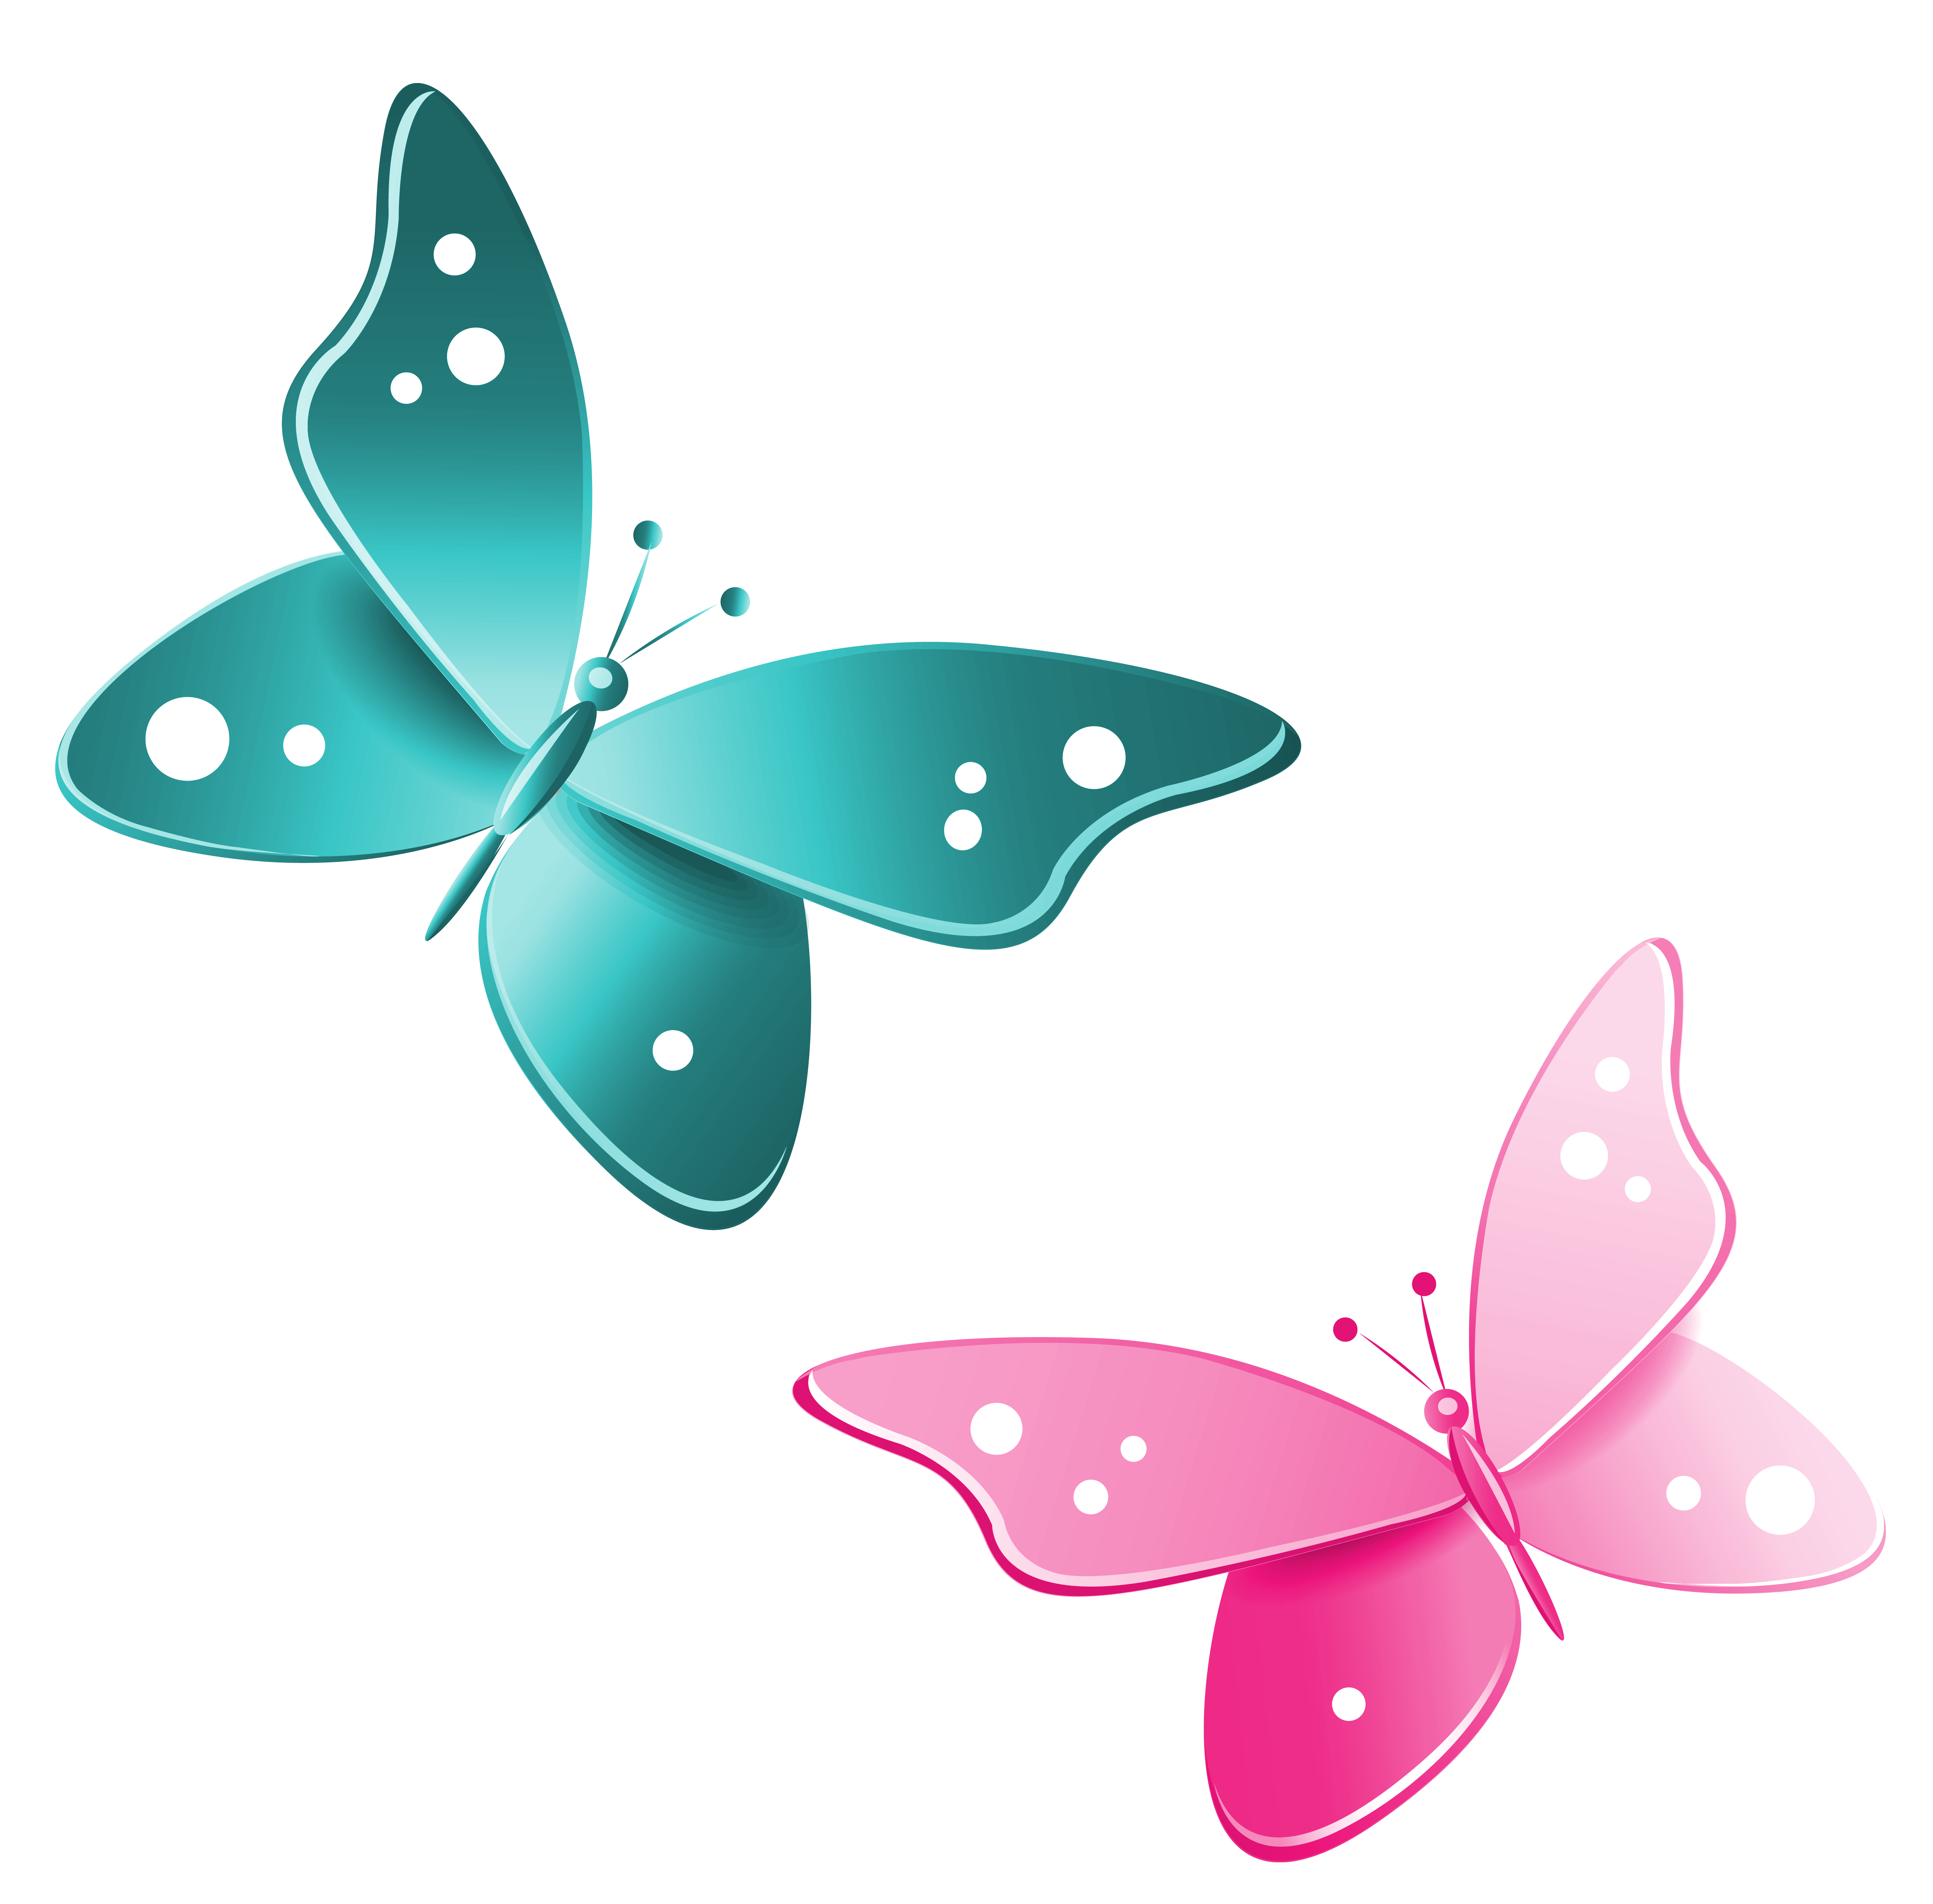 image free library Butterflies clipart banner. Blue and pink png.